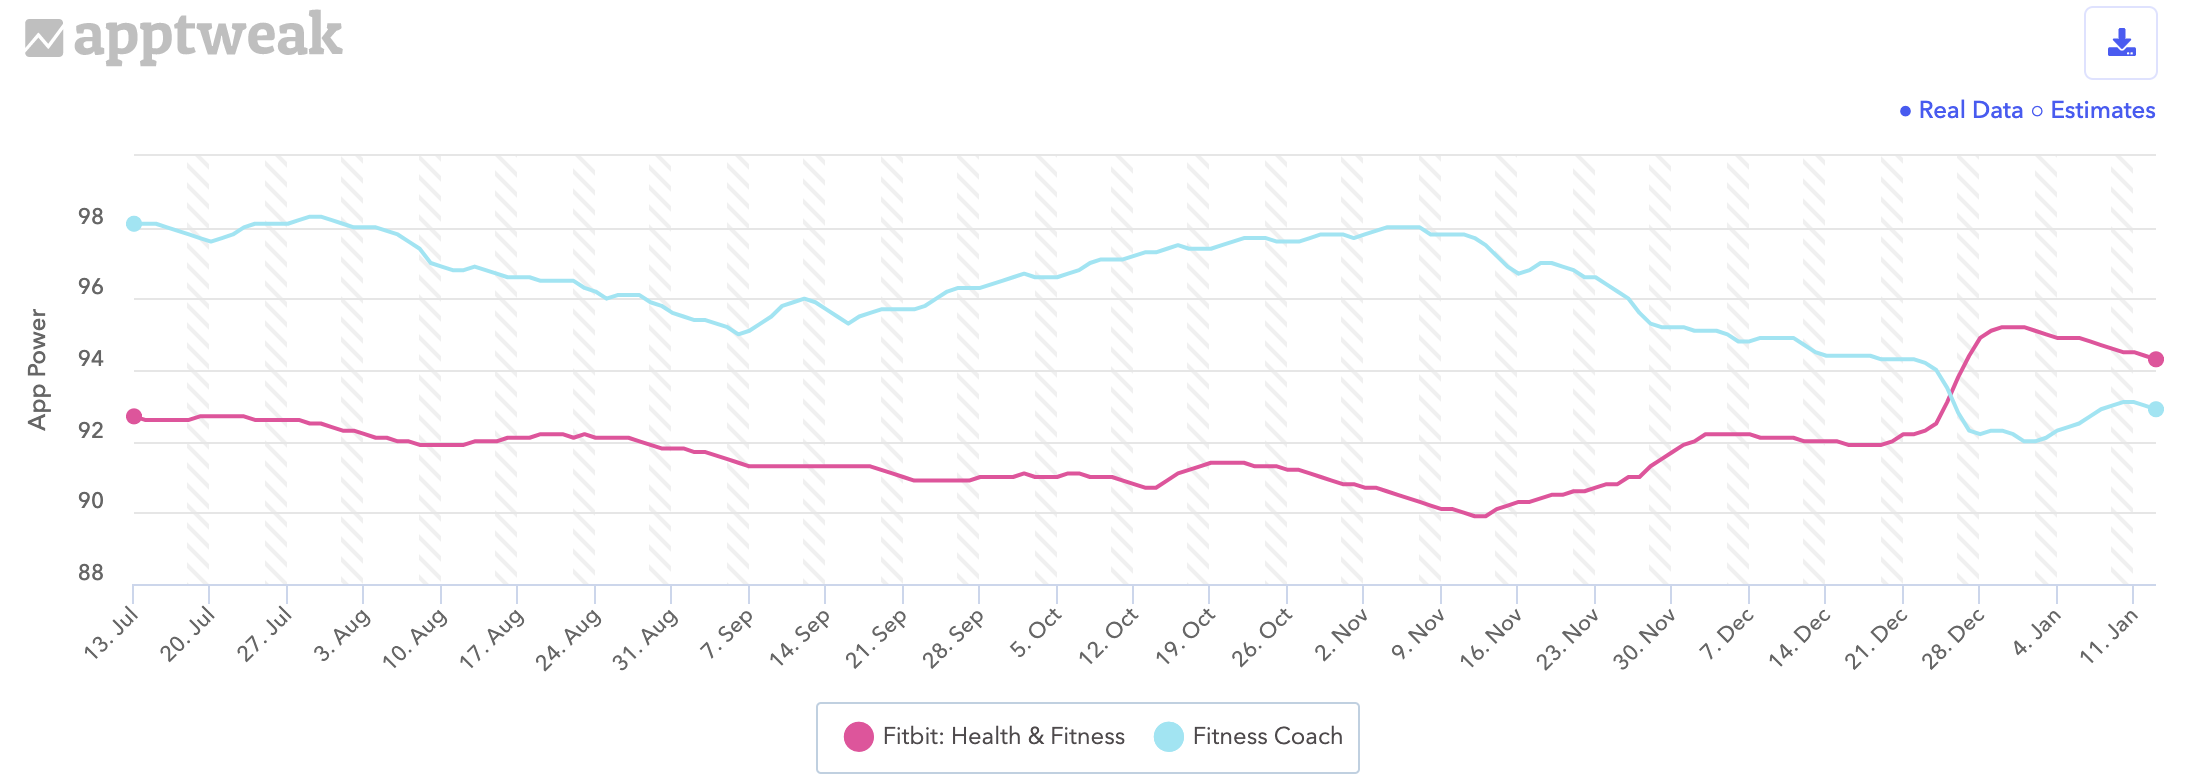 app power fitbit vs fitness coach